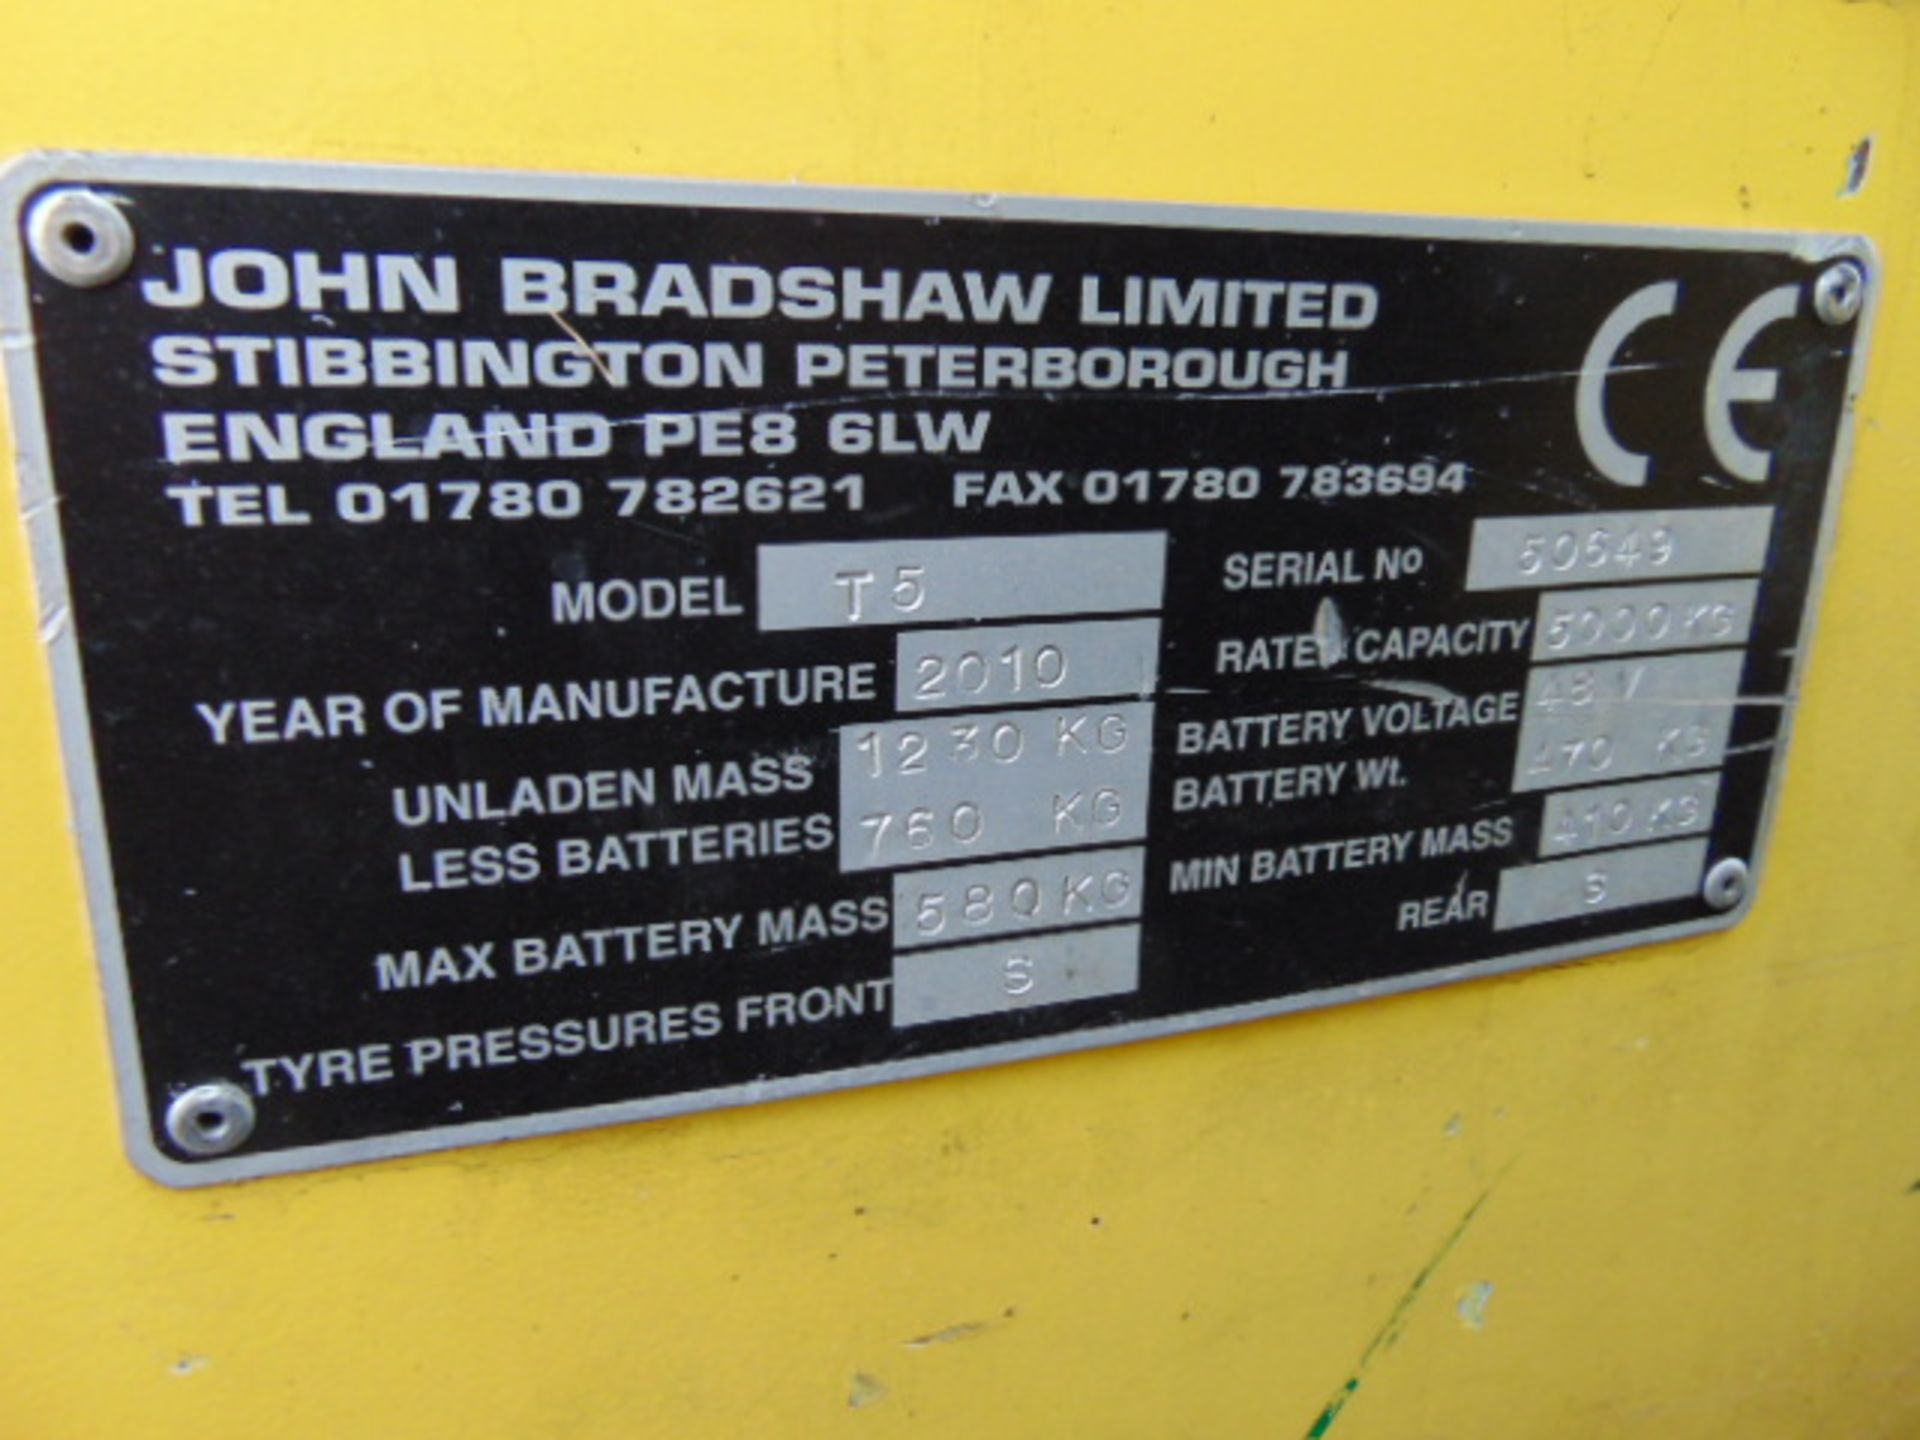 Lot 7 - 2010 Bradshaw T5 Electric Tow Tractor